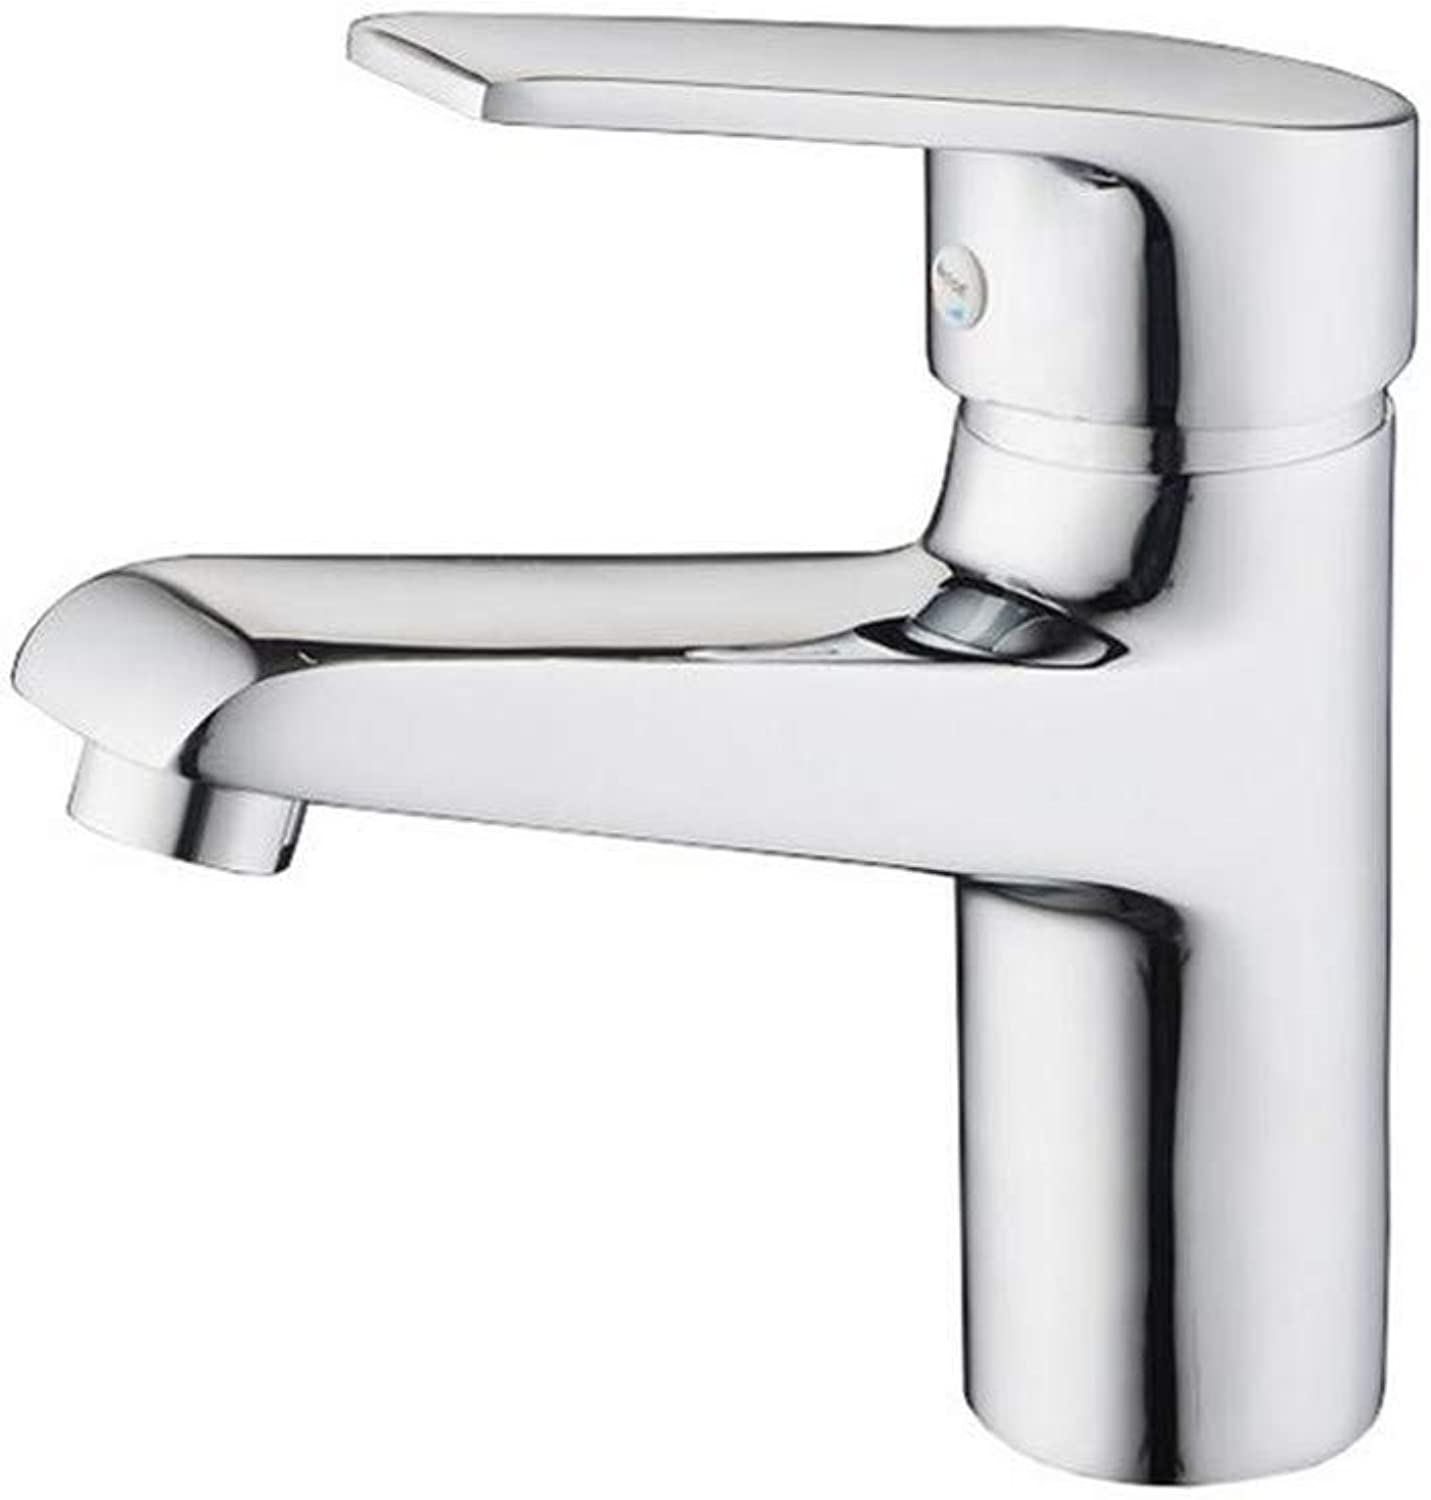 Faucetbasin Mixer Tap Copper Basin Faucet Single Hole Single Cold and Hot Basin Wash Basin and Faucet.